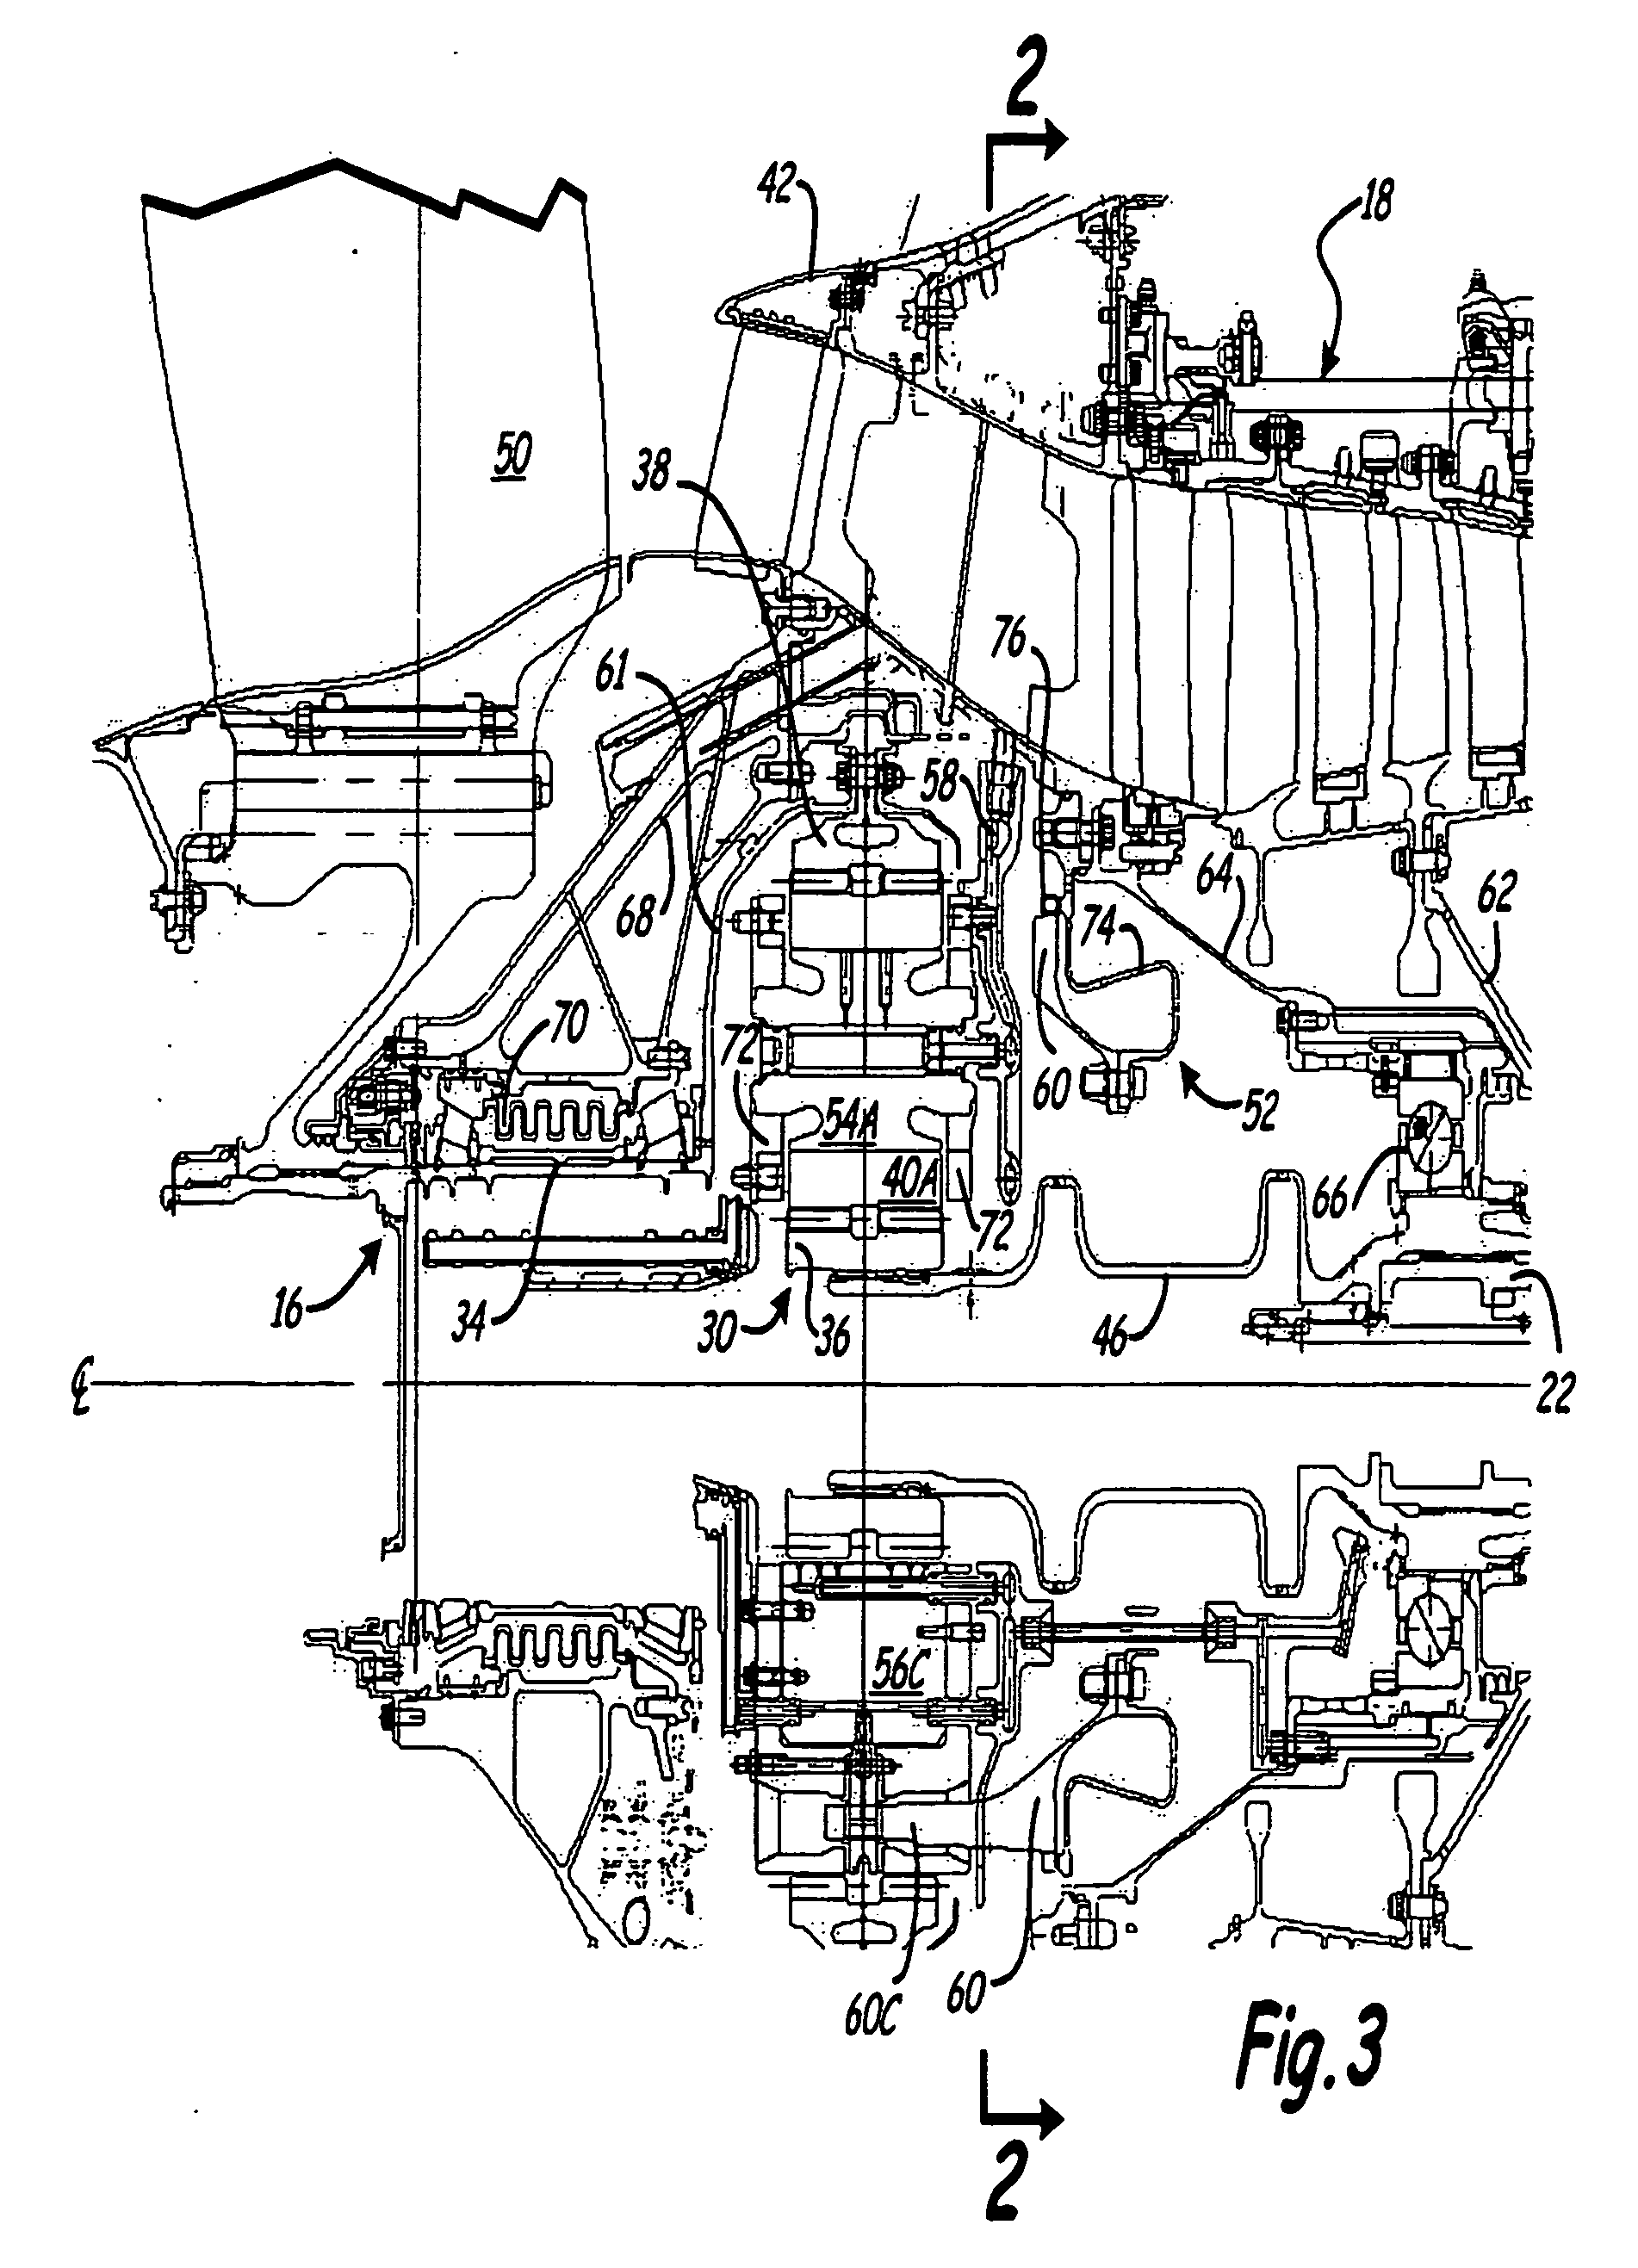 patent ep2339146b1 - coupling system for a star gear train in a gas turbine engine